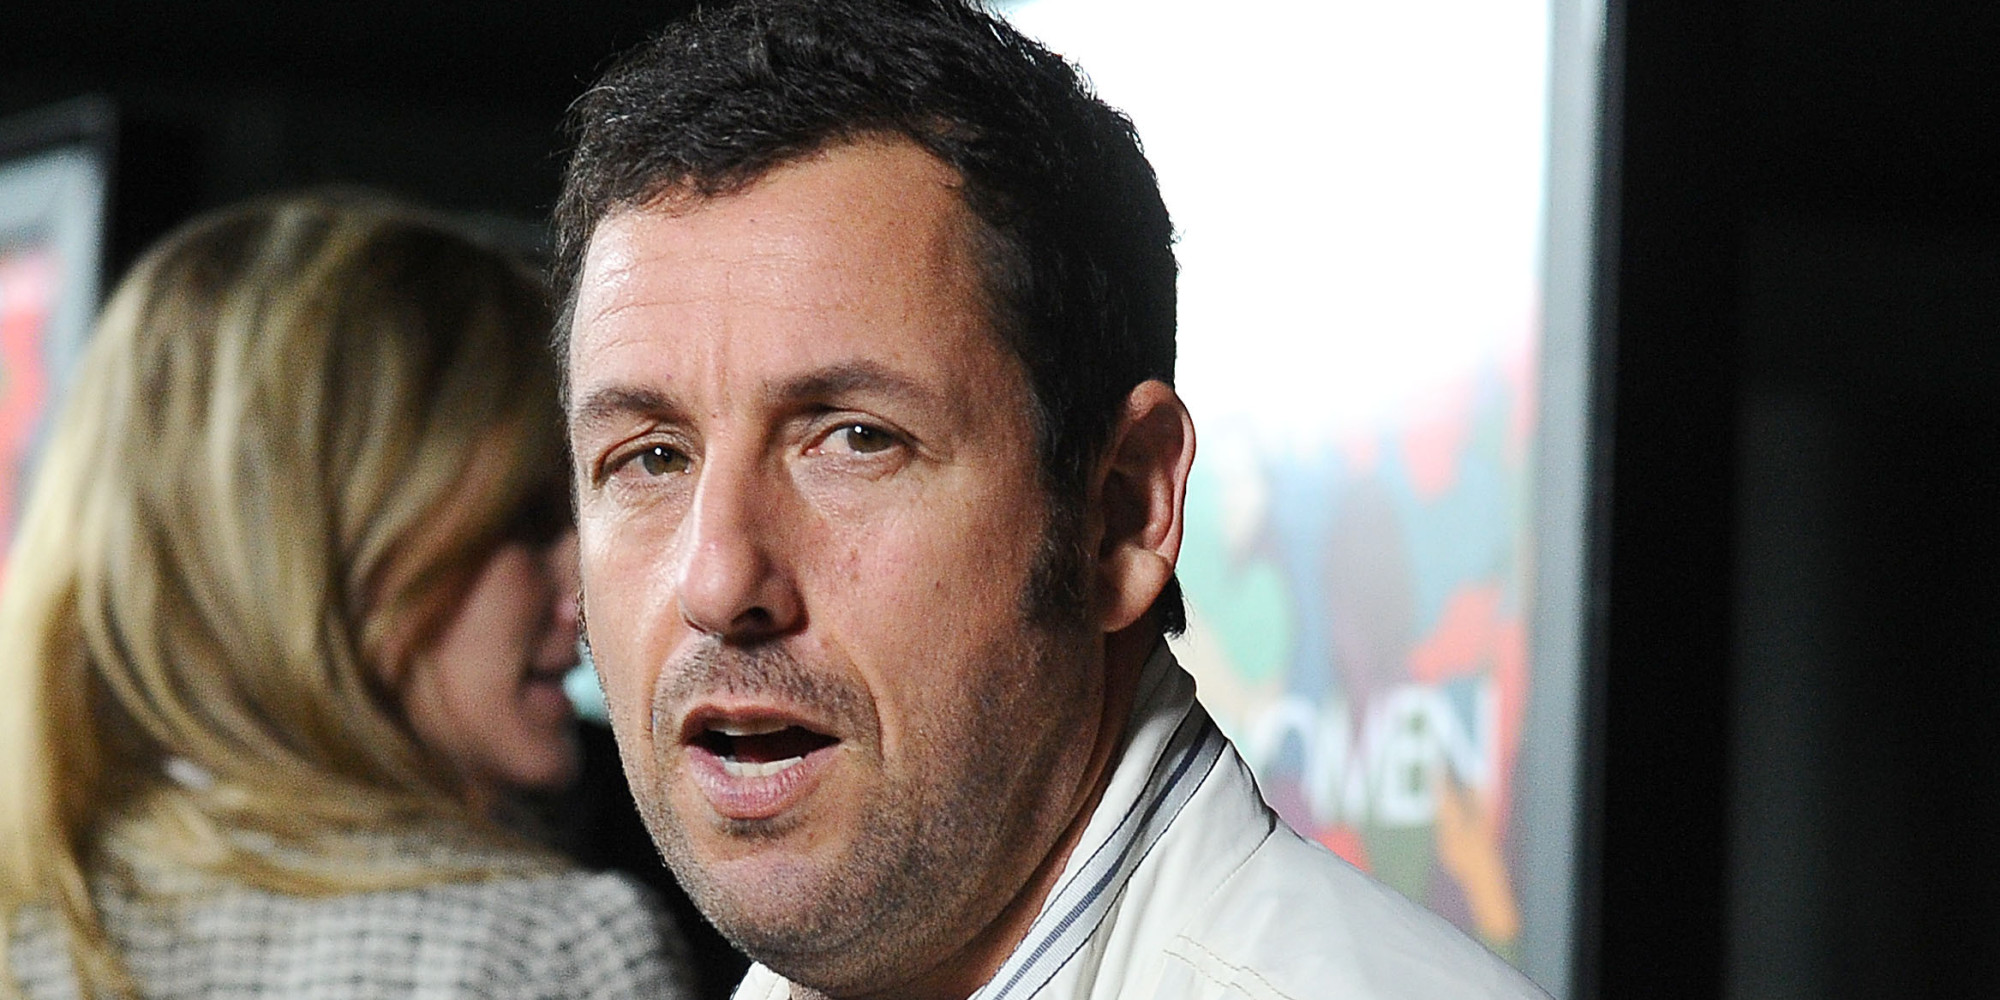 Adam Sandler is going back to the 1990s with a new Netflix movie